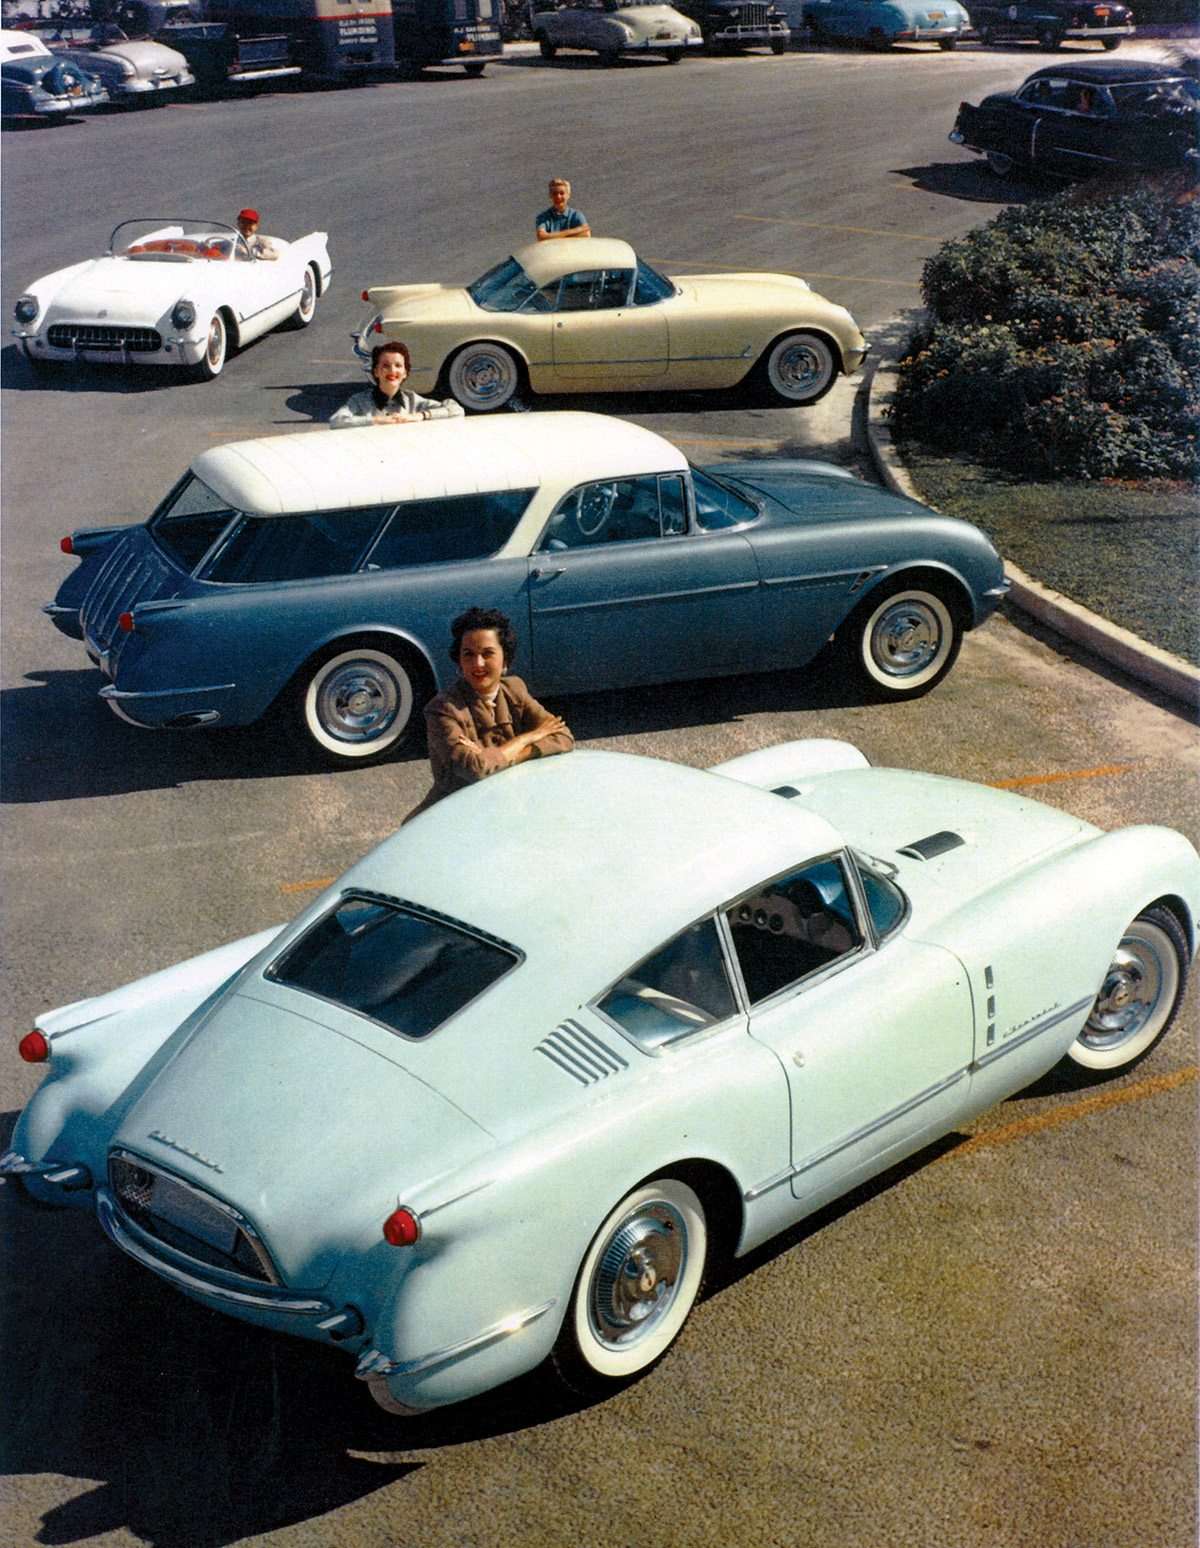 1954 Motorama Corvette and Corvette-based Show Cars